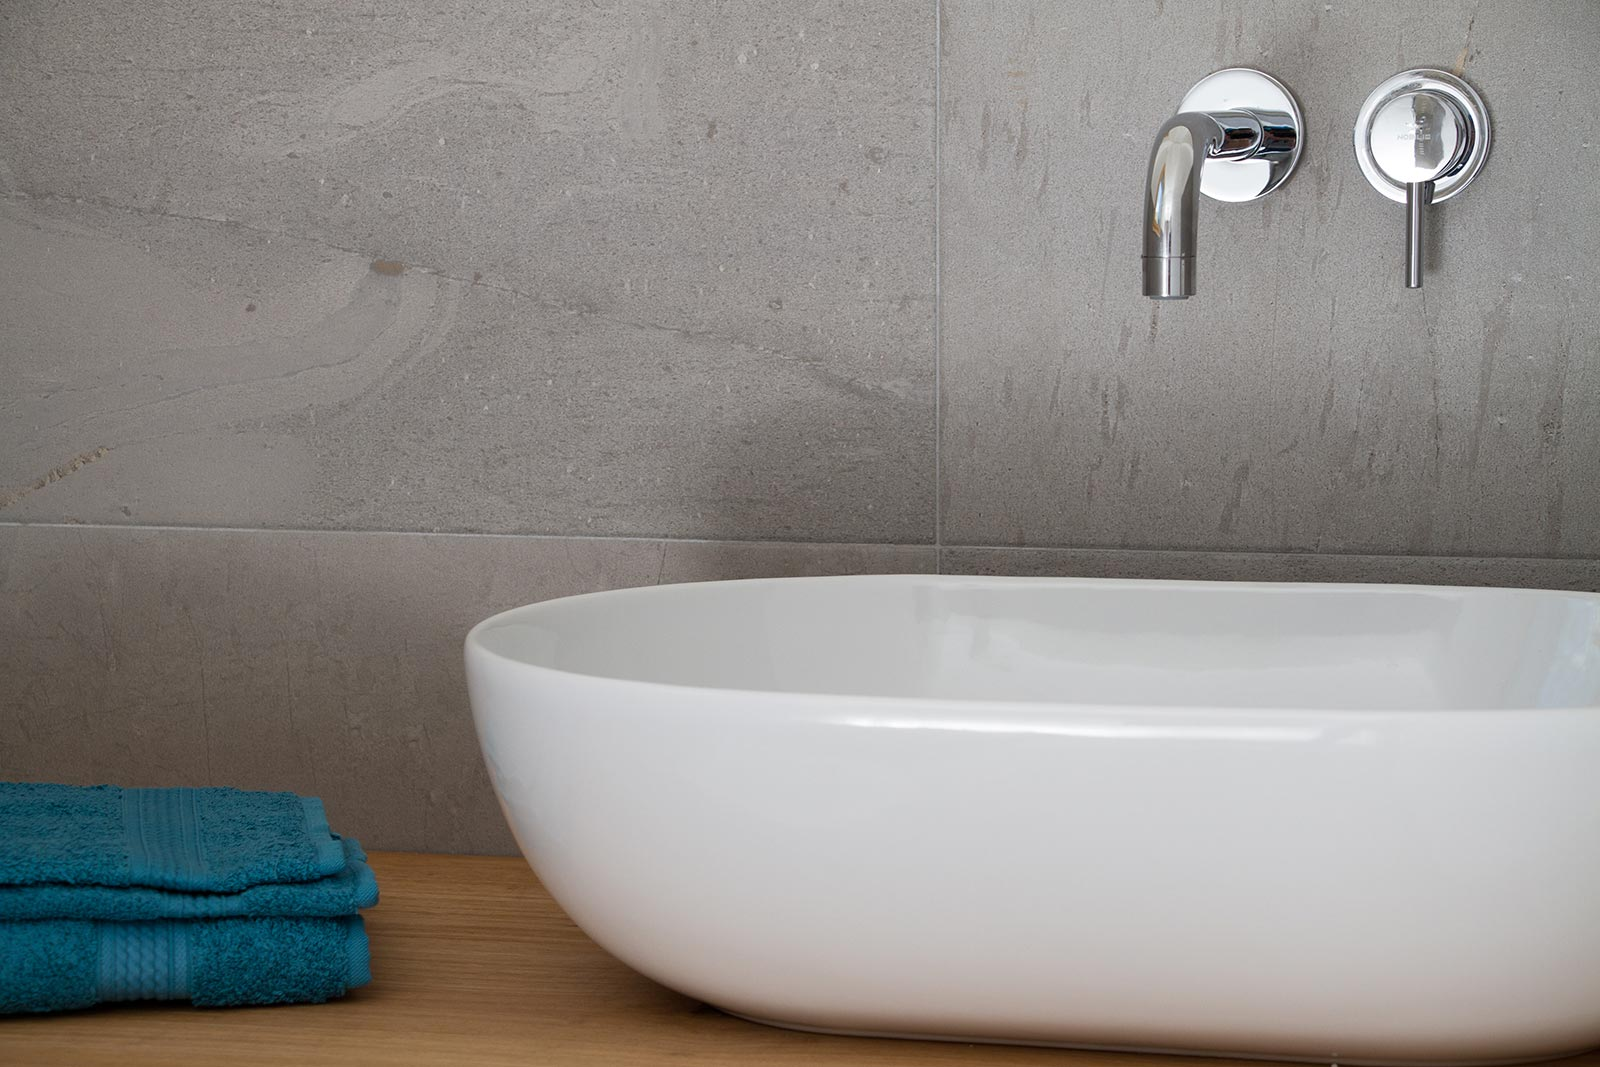 Ingrappa Sporthouse Bagno Design